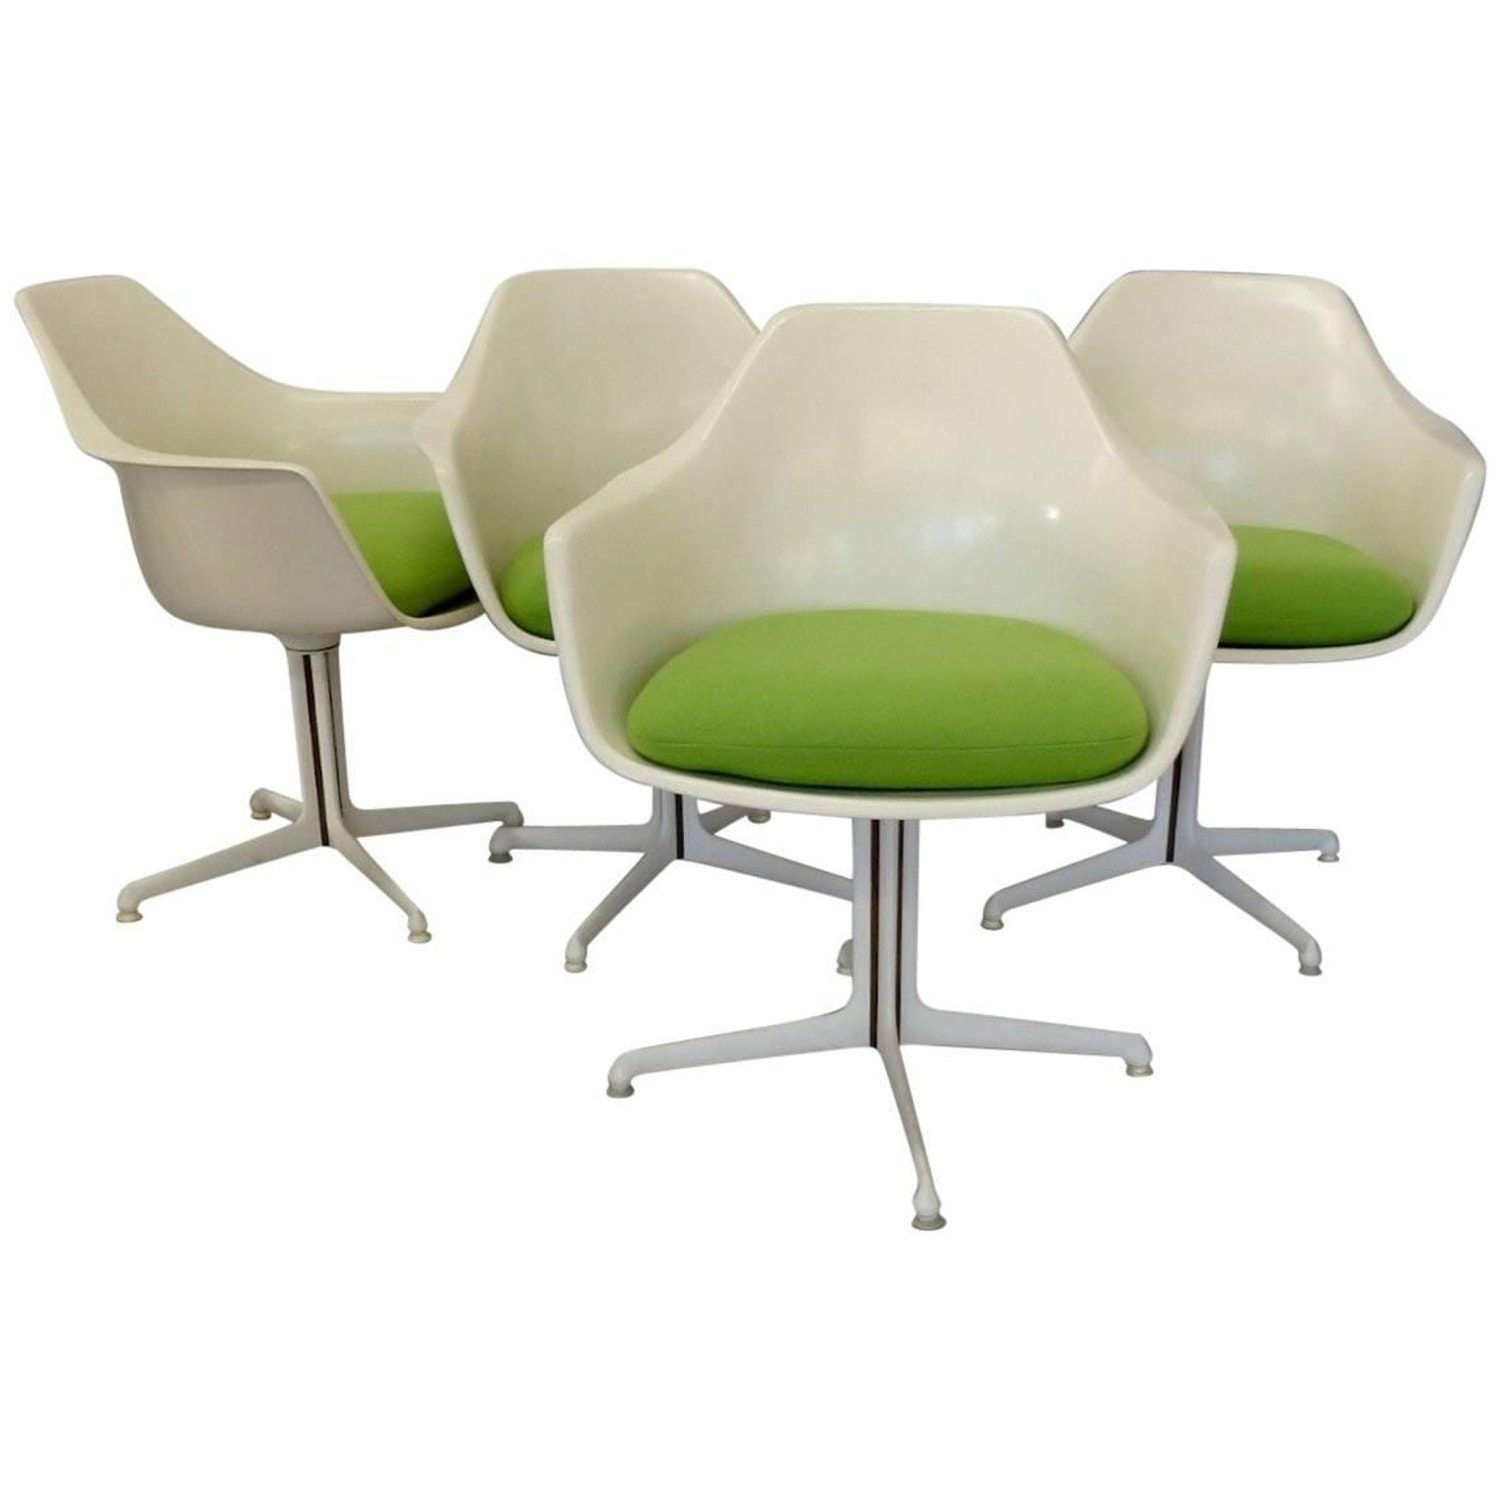 Eames Chair Weiß Weiße Eames Office Chair Bürodrehstuhl Schwarz Und Weiß Schreibtisch Stuhl Weiß Lounge Sessel #stü… | Swivel Dining Chairs, Dining Chairs, Wrought Iron Patio Chairs